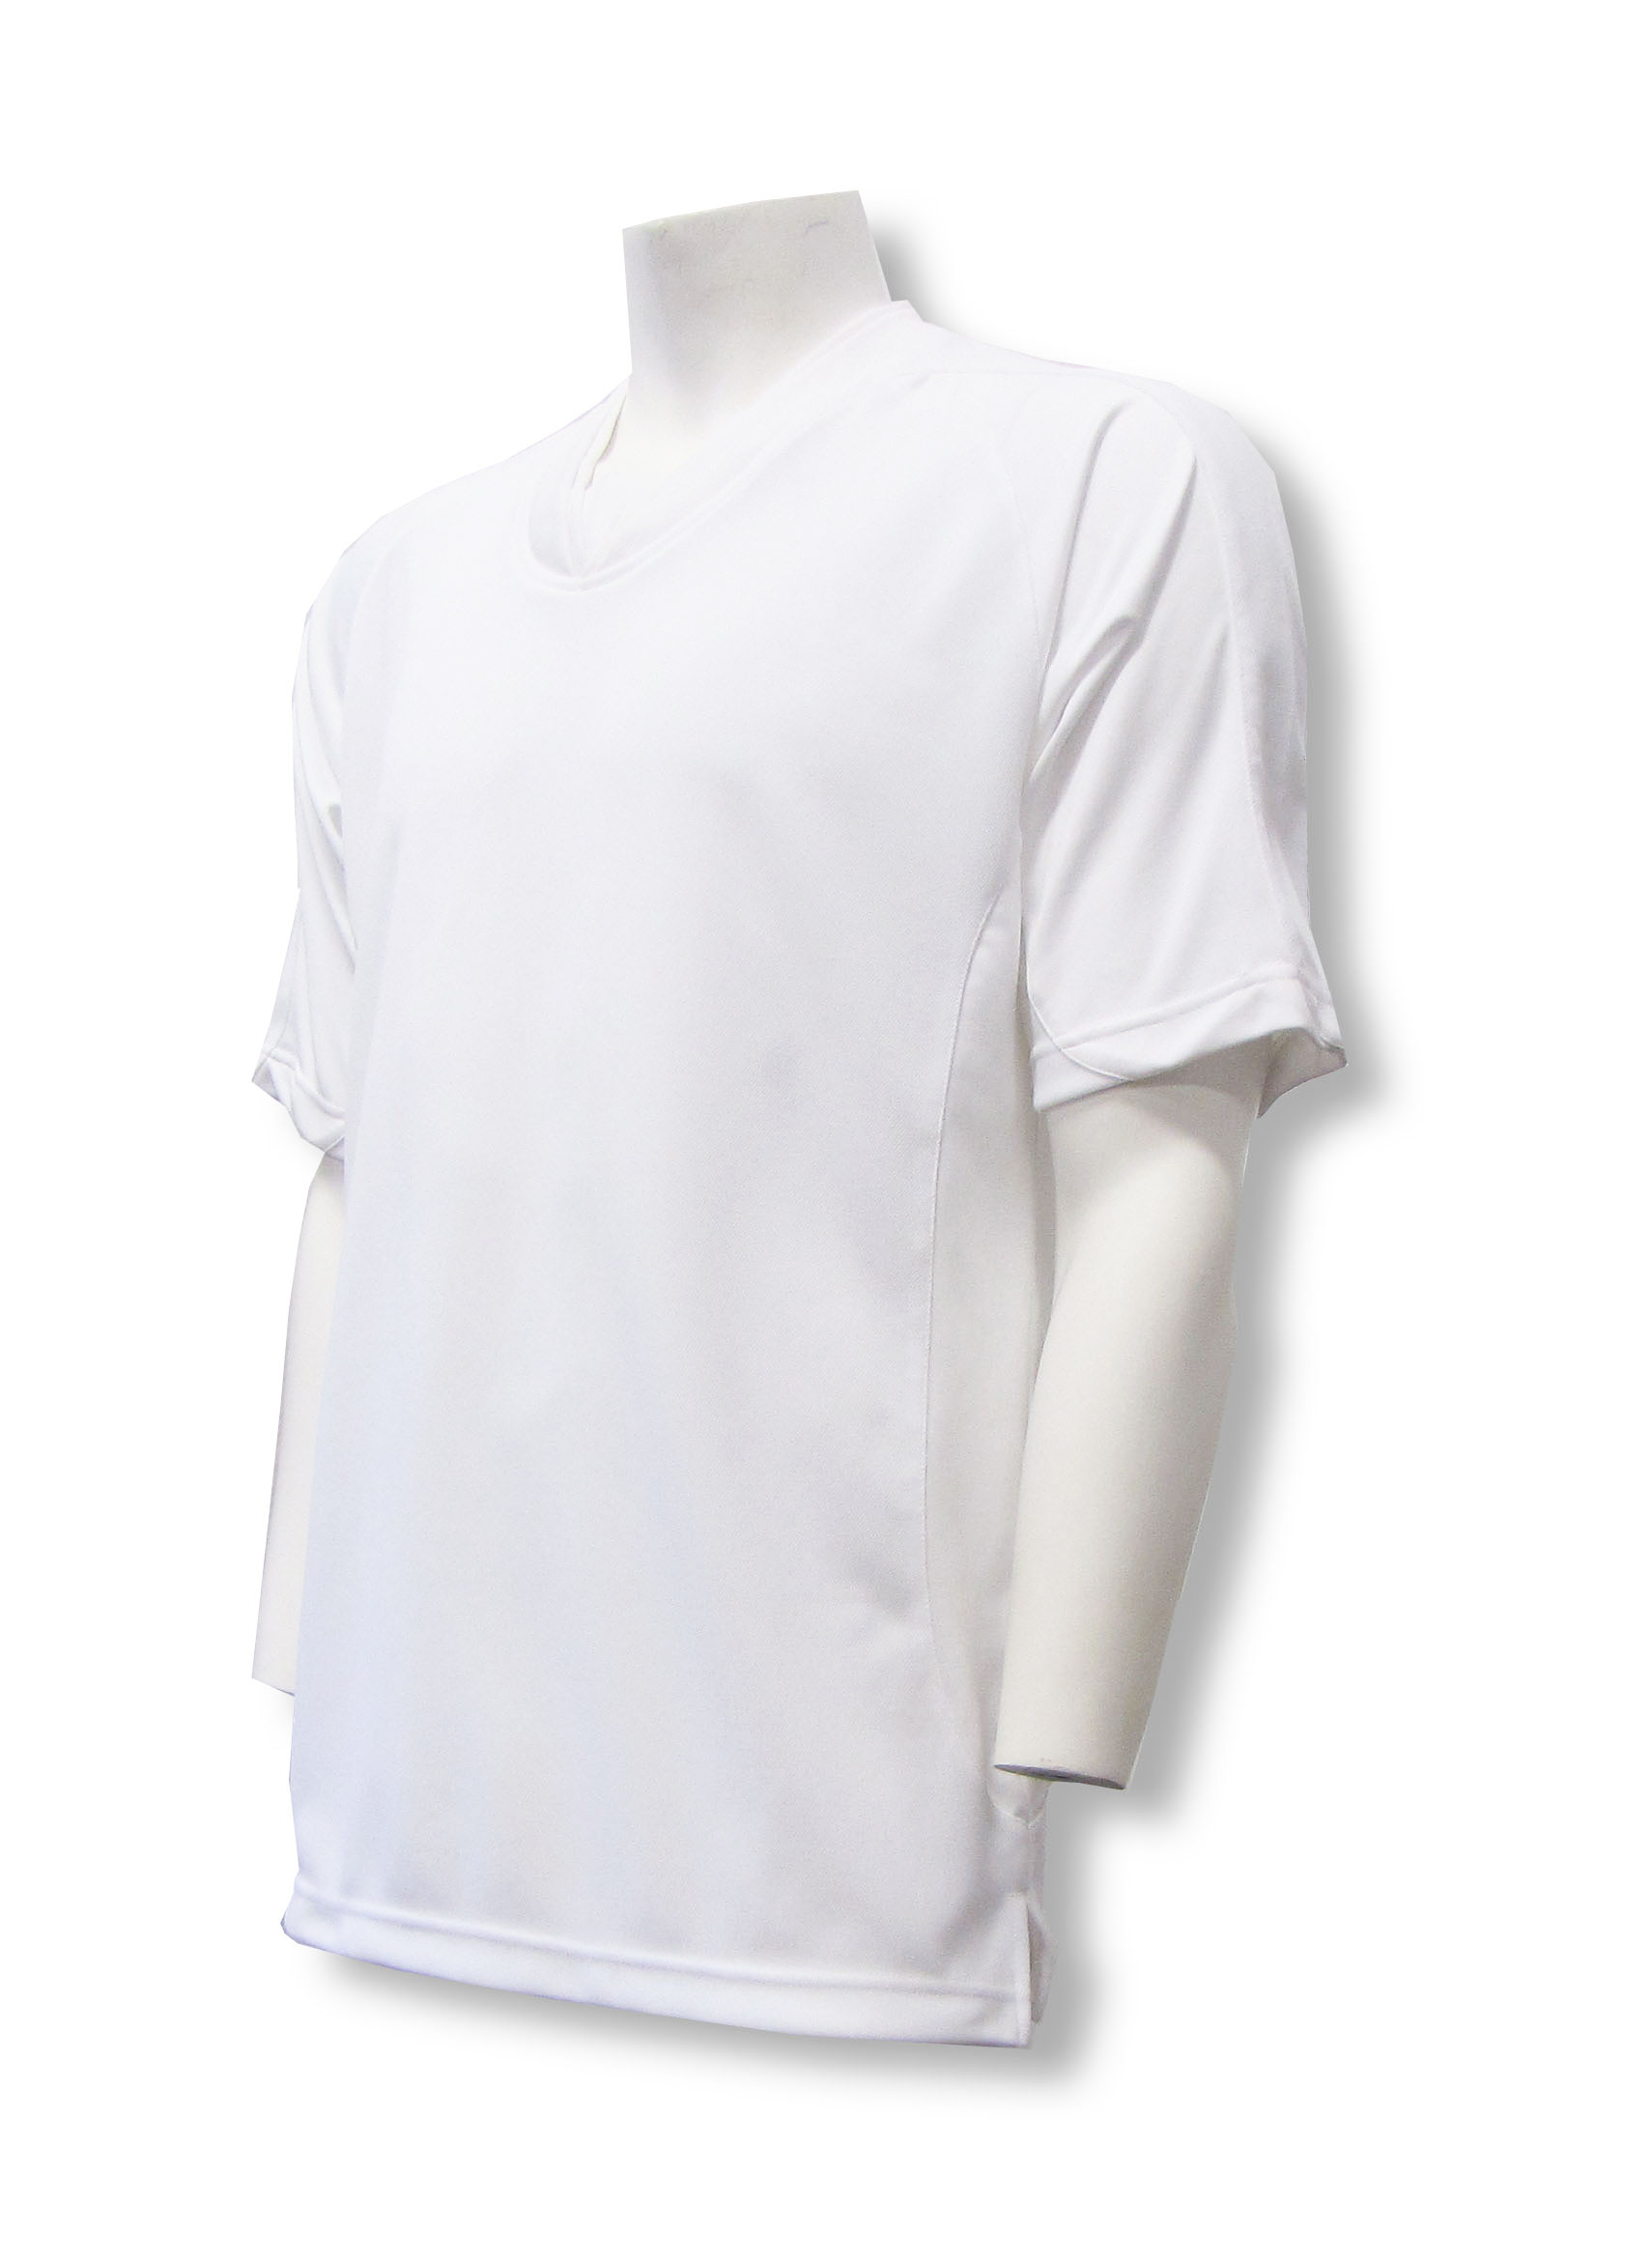 Sweeper / Falcon soccer jersey in white by Code Four Athletics